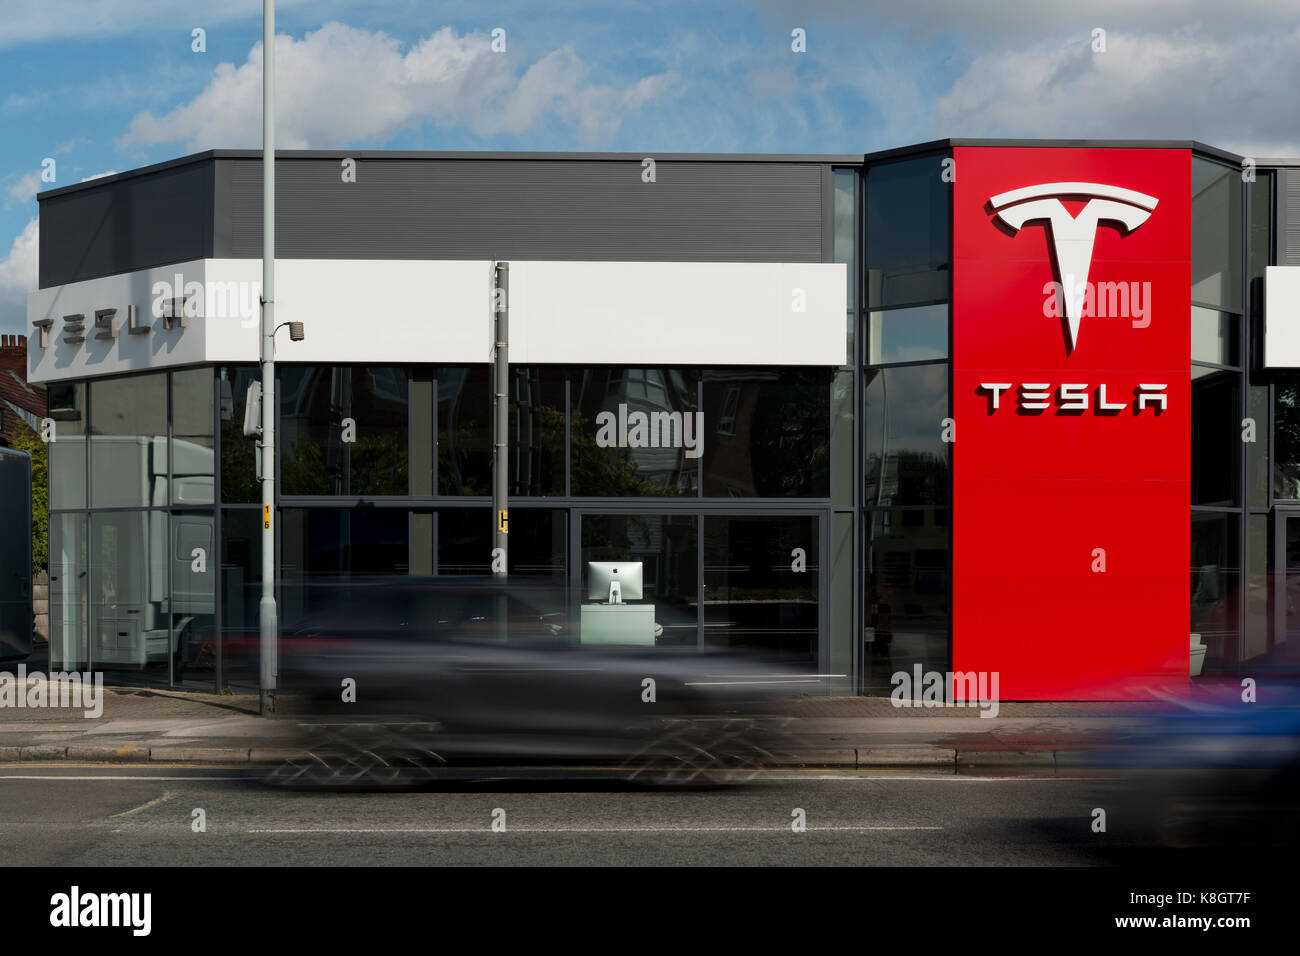 Traffic drives past a Tesla car showroom located in Heaton Chapel, though listed as South Manchester, in the UK - Stock Image